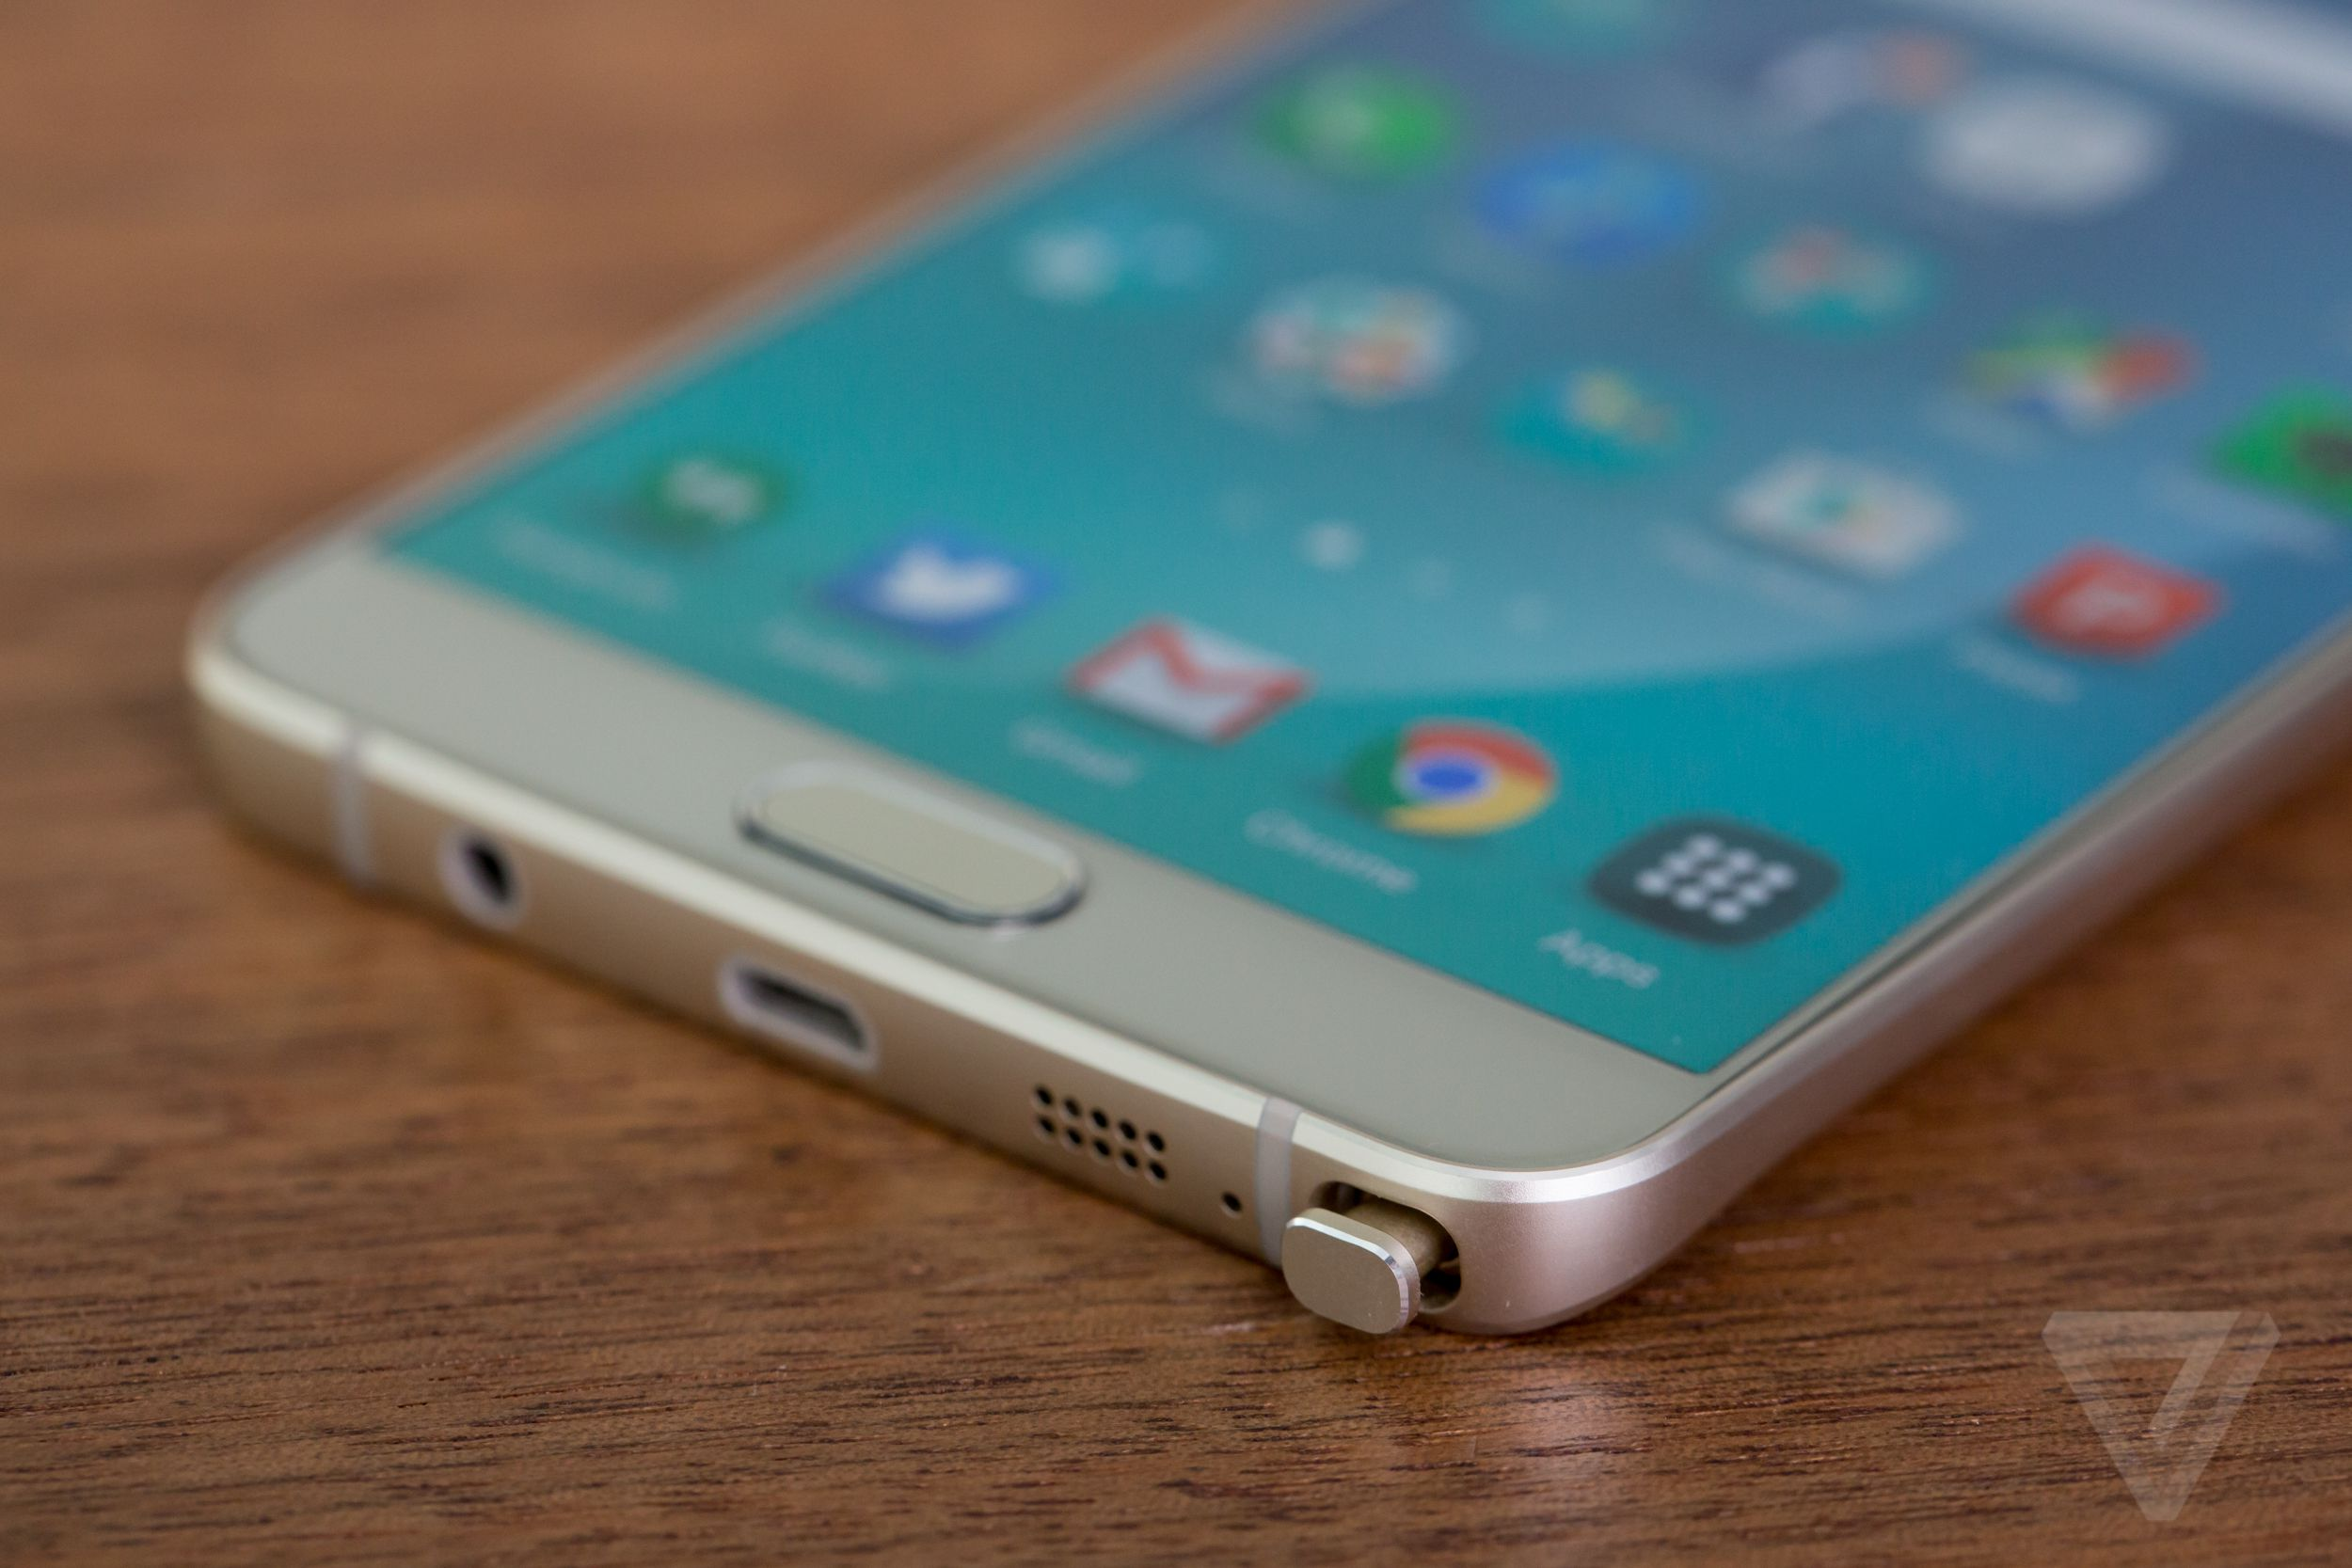 Samsung Galaxy Note 5 Review The Verge